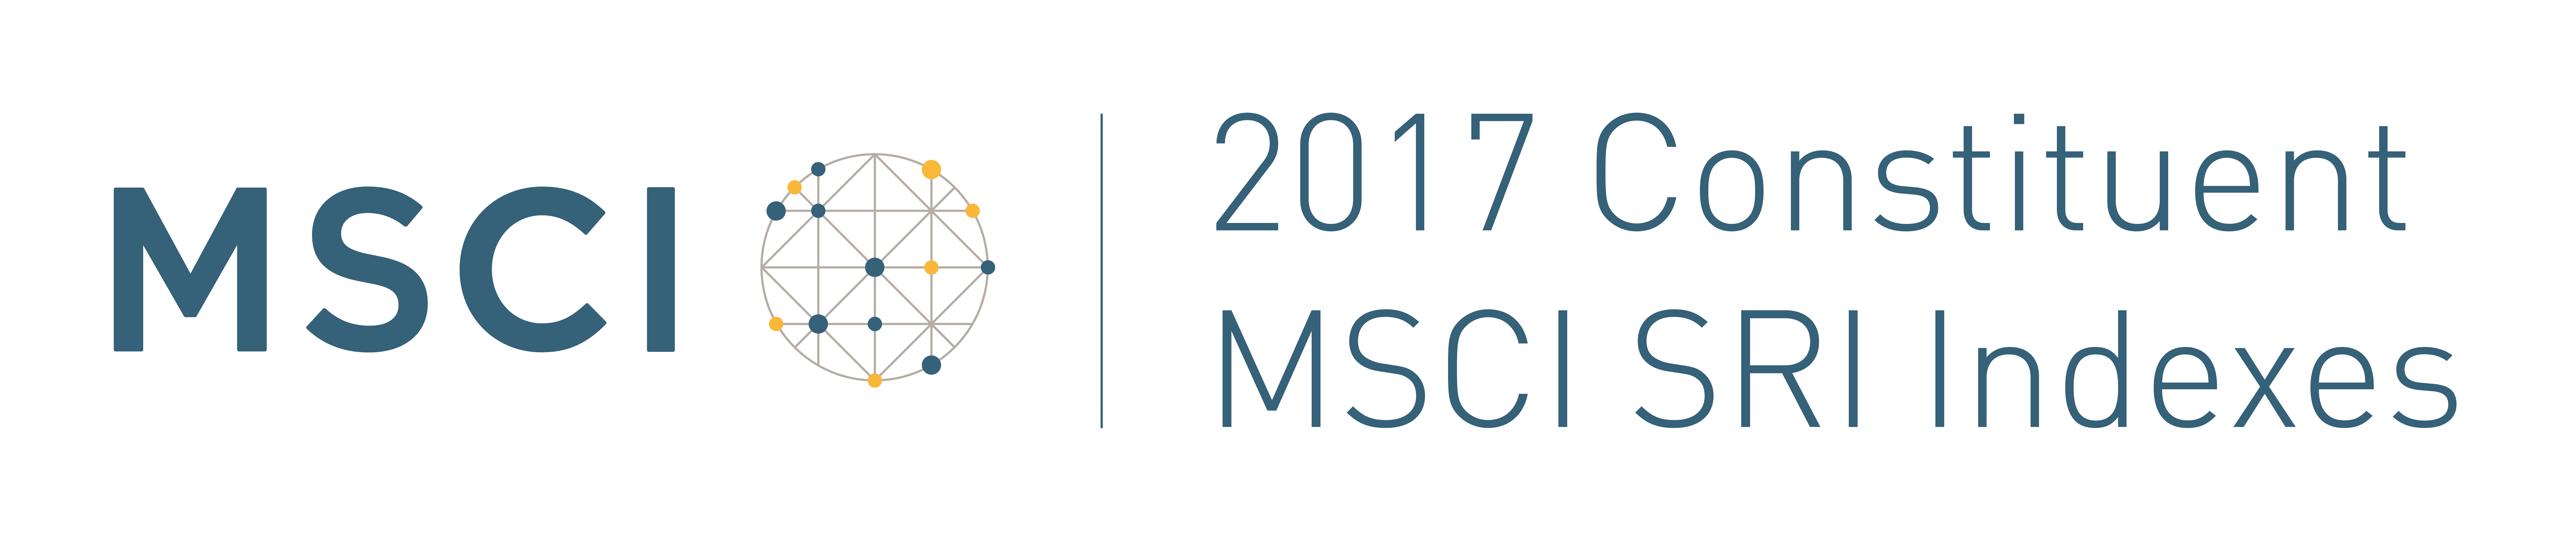 2017 Constituent MSCI SRI Indexes